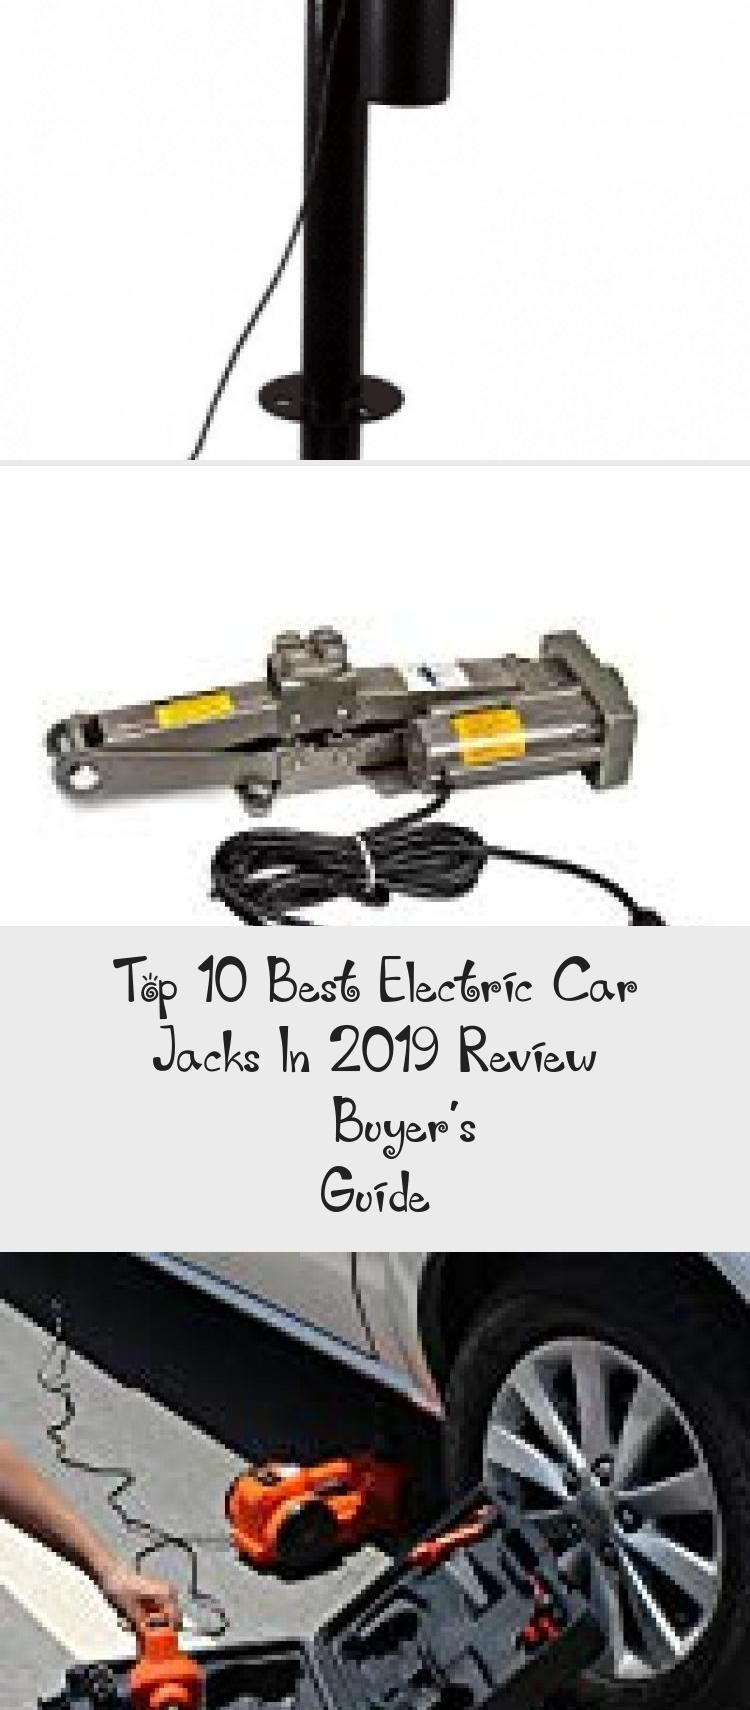 Top 10 Best Electric Car Jacks In 2019 Review Buyer's